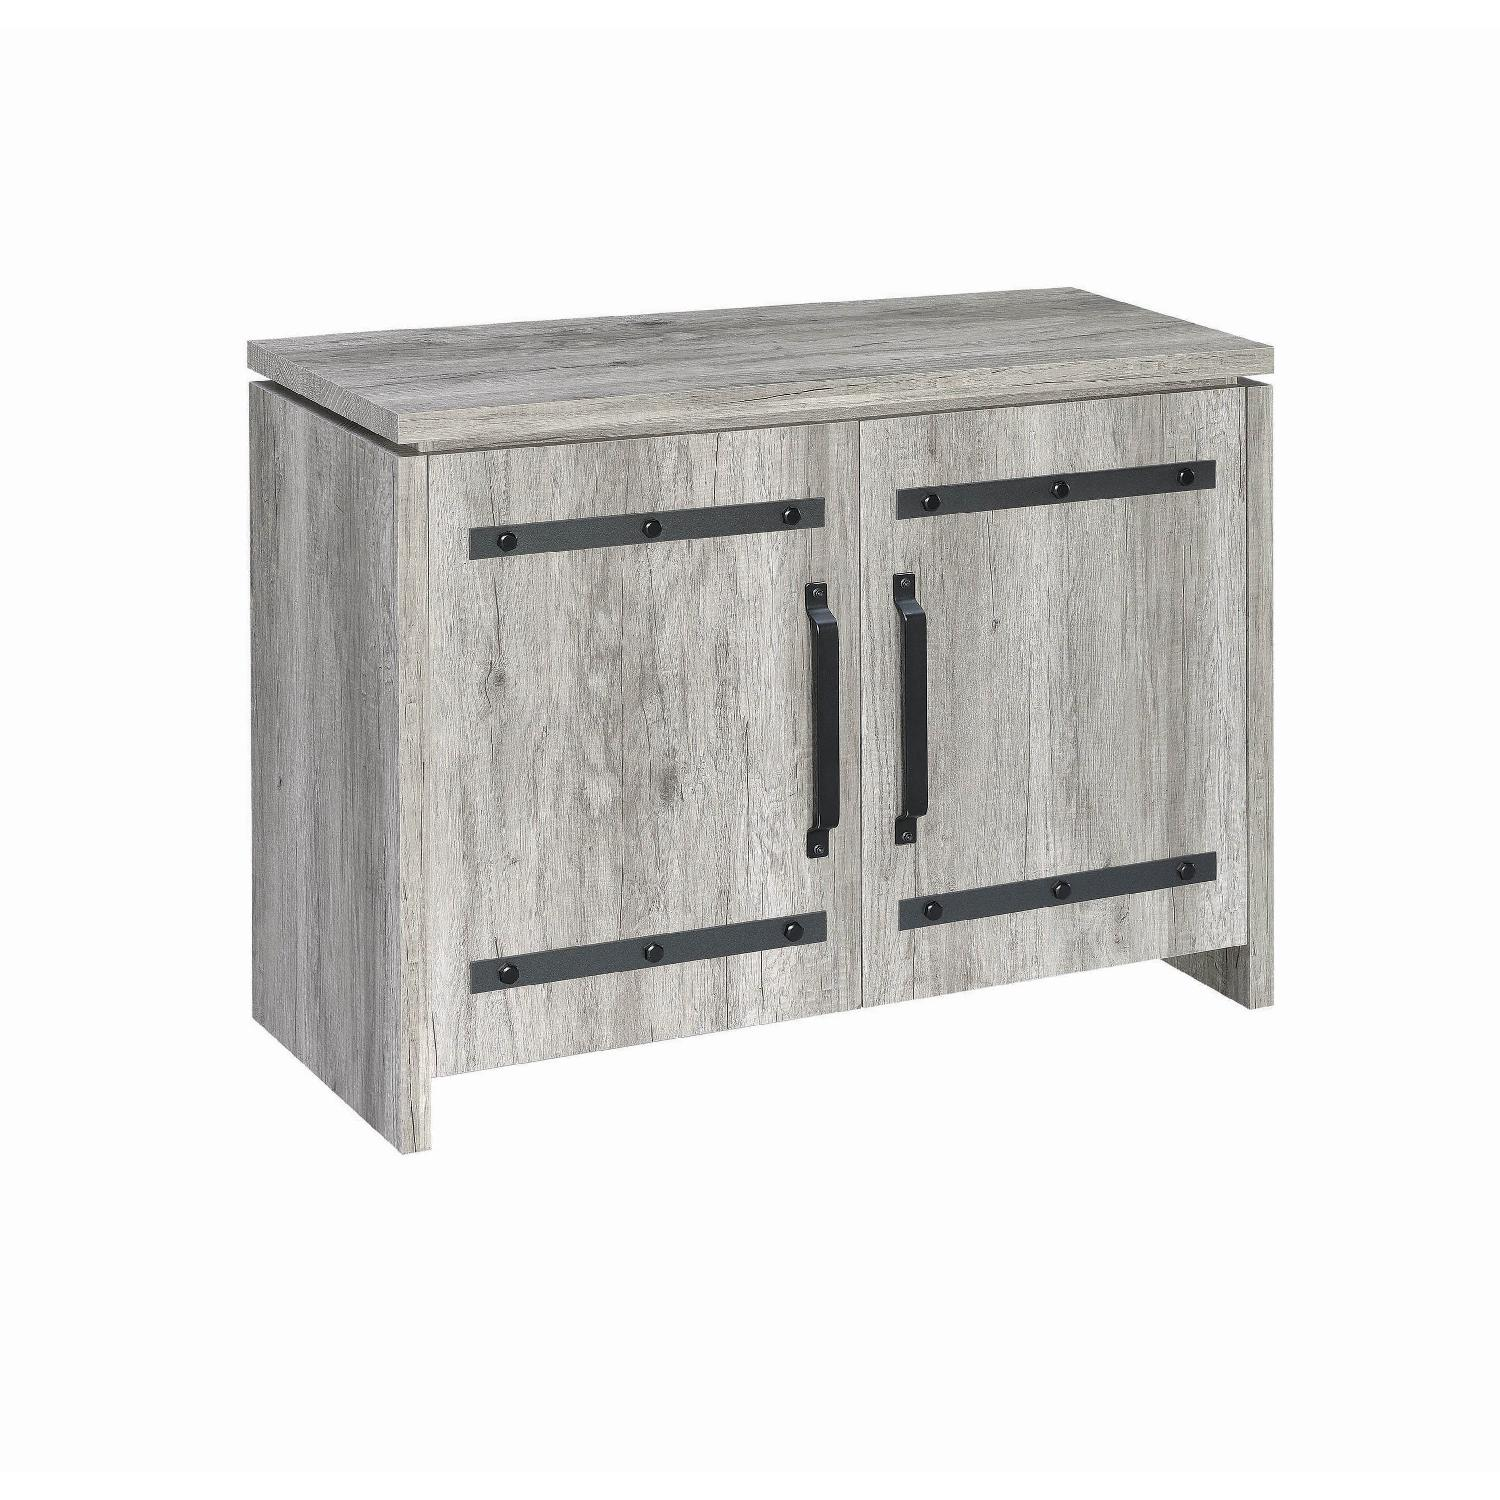 Storage Cabinet w/ Black Metal Accent - image-2